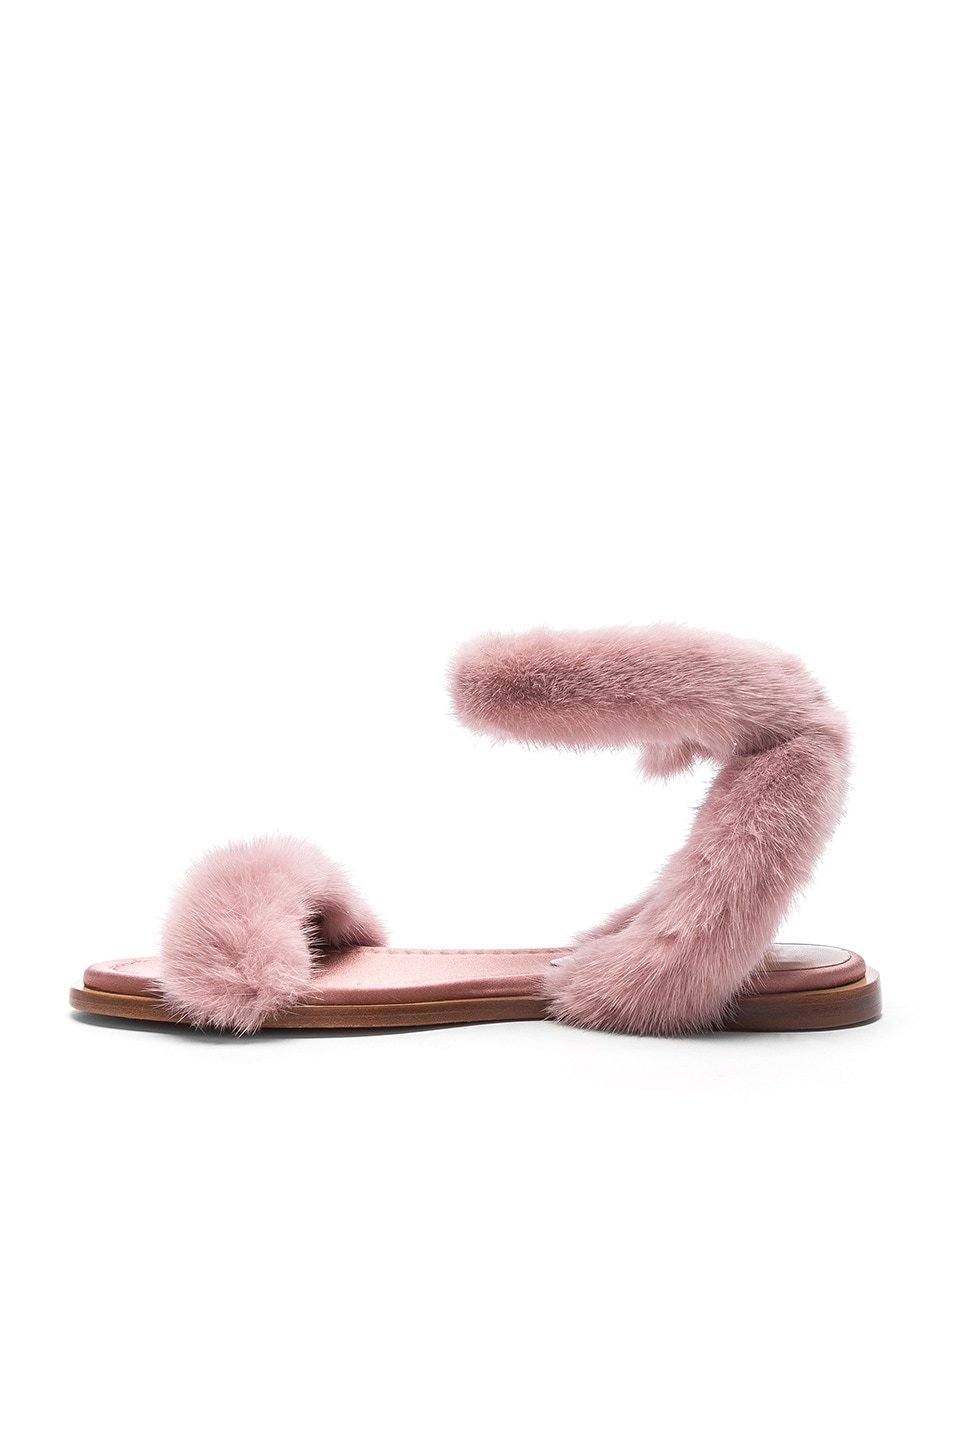 c12544aba03a Image 5 of Valentino Mink Fur Sandals in Lipstick